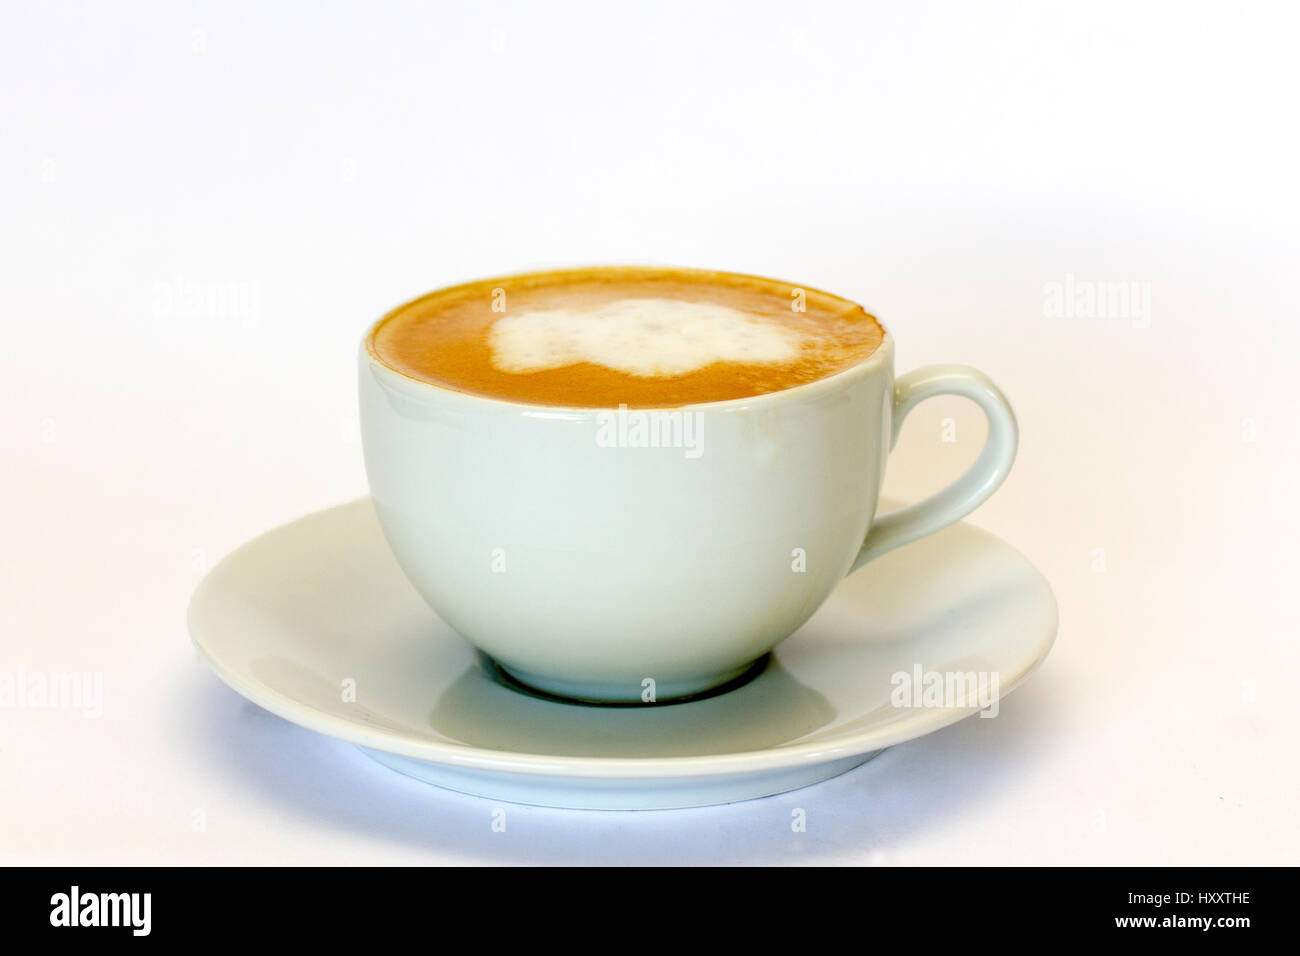 Cappuccino in a cup and saucer - Stock Image